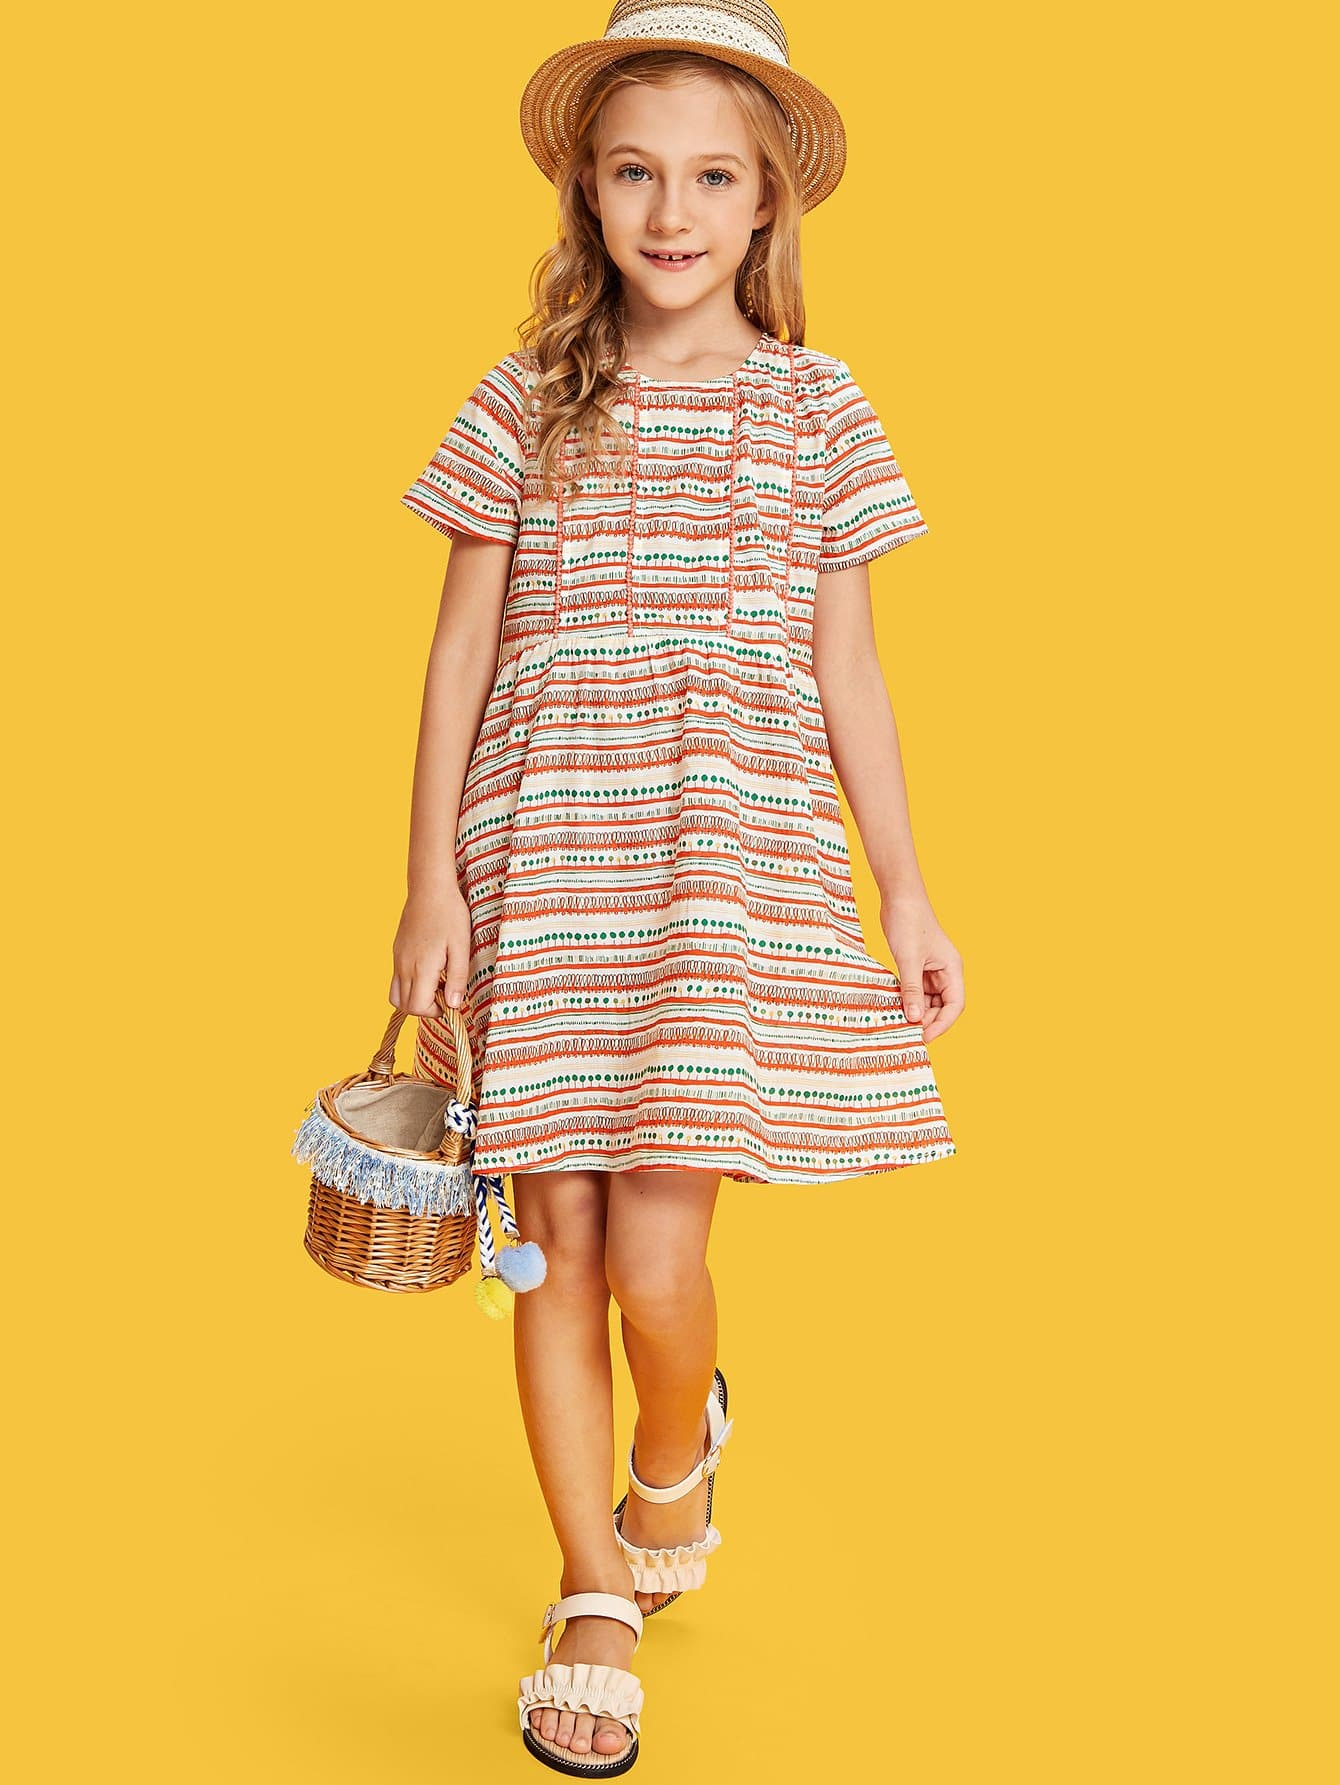 Girls Mixed Print Smock Dress new f4 v6pro flight control with 5 8g 48ch vtx 0 25 100 200 400 600 switchable transmitter 5v bec osd pdb for drone